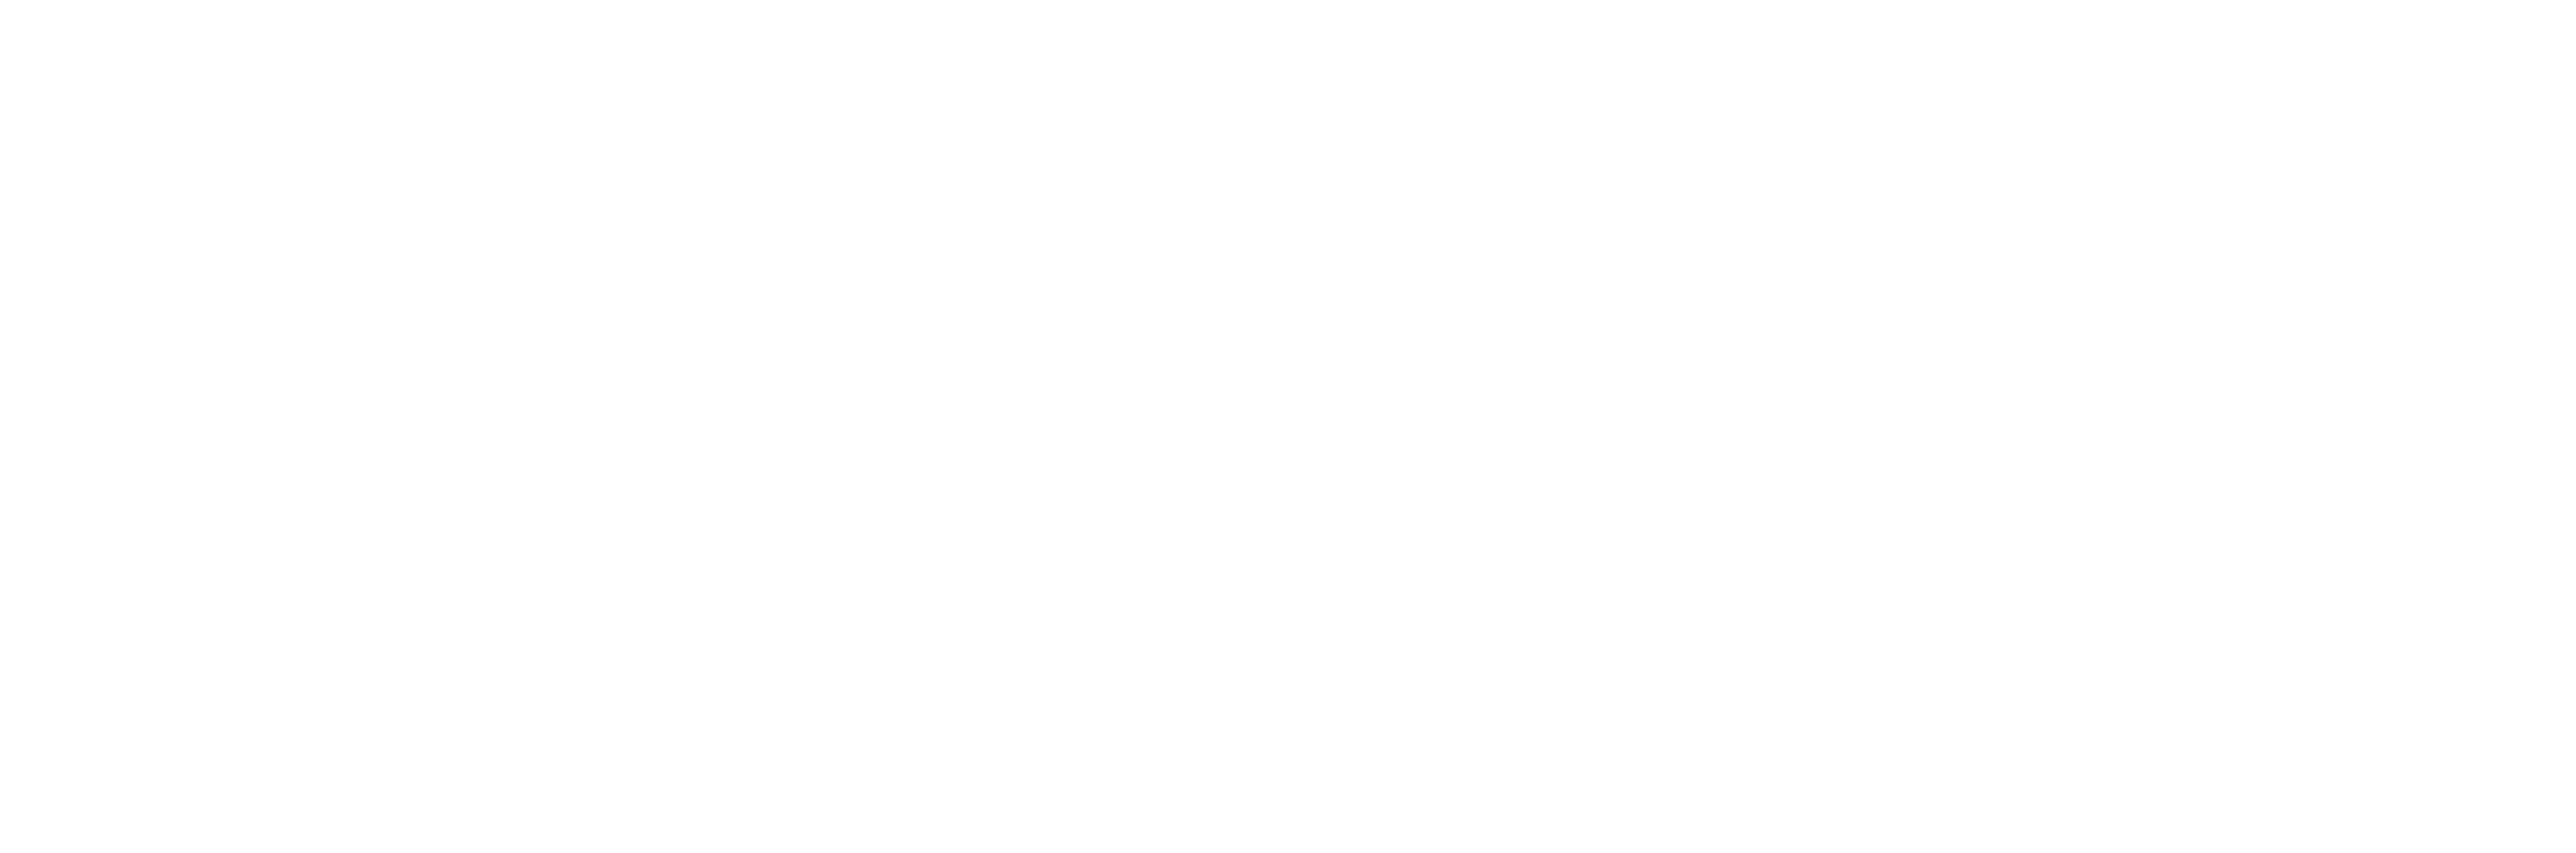 Mobility 4.0 challenge by Software Republique